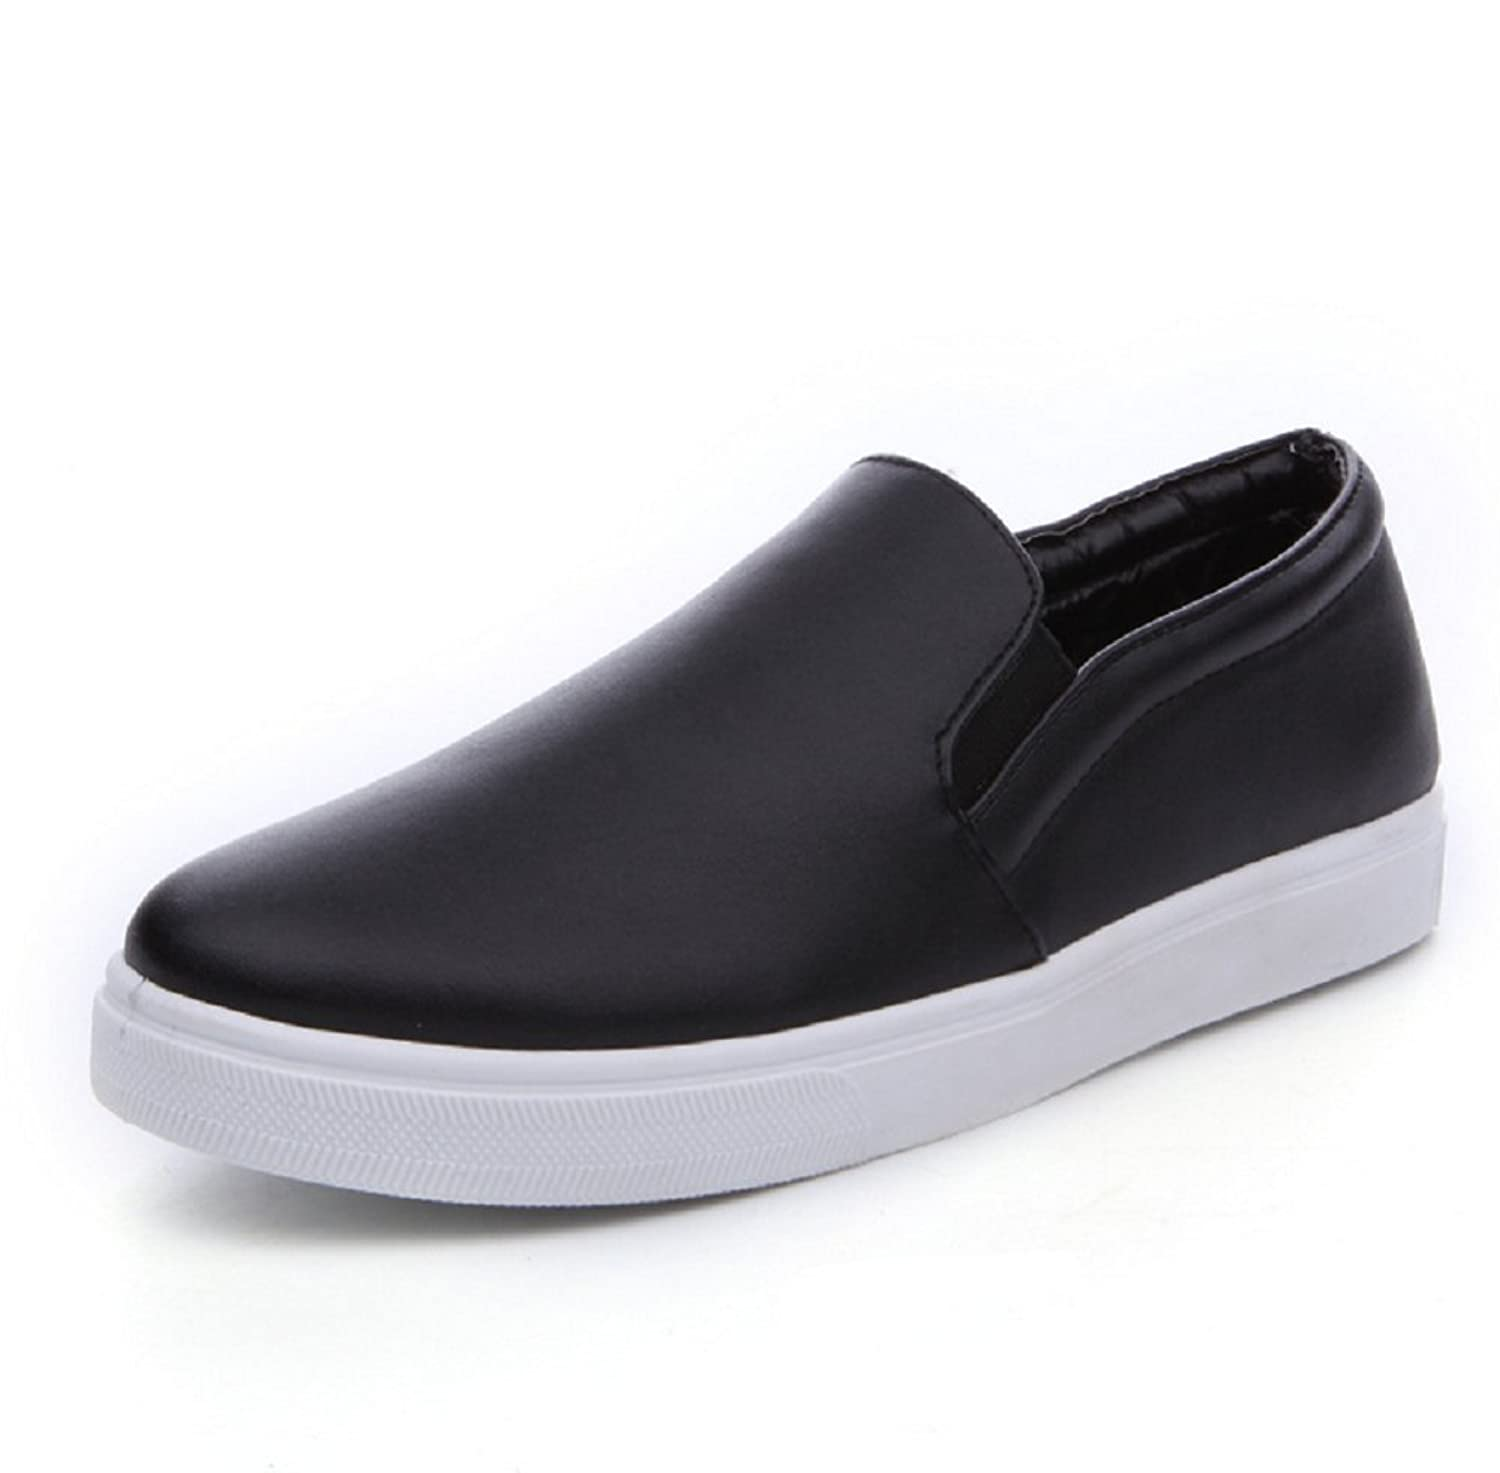 df640be2 LOVEBEAUTY Women's Solid Color Fashion Sneakers Slip On ...